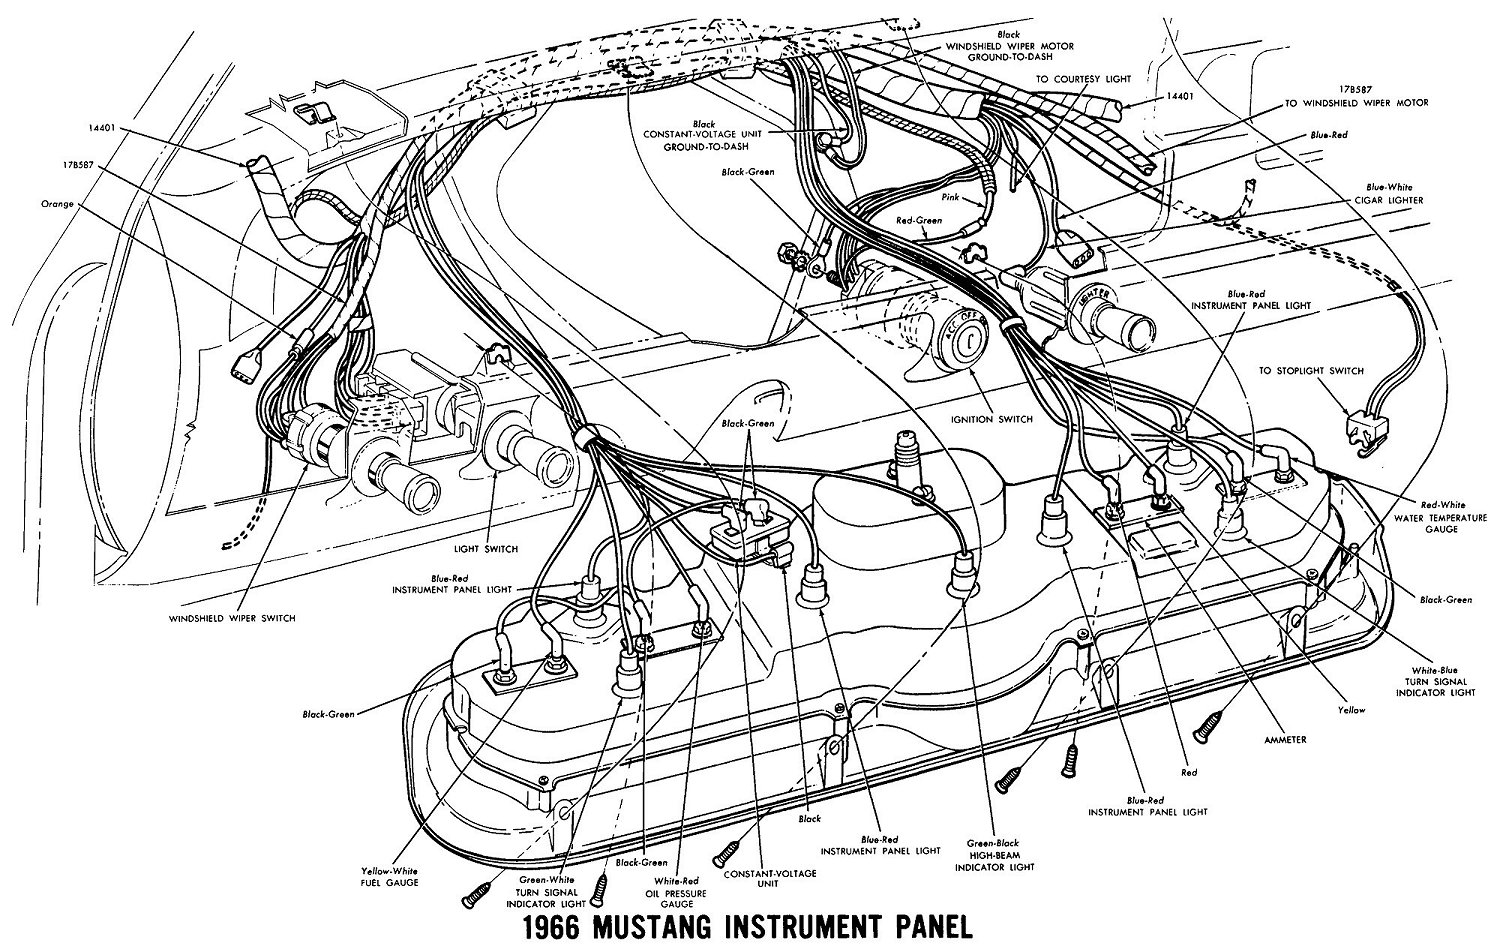 66instr 1966 mustang wiring diagrams average joe restoration 1966 fairlane wiring diagram at aneh.co